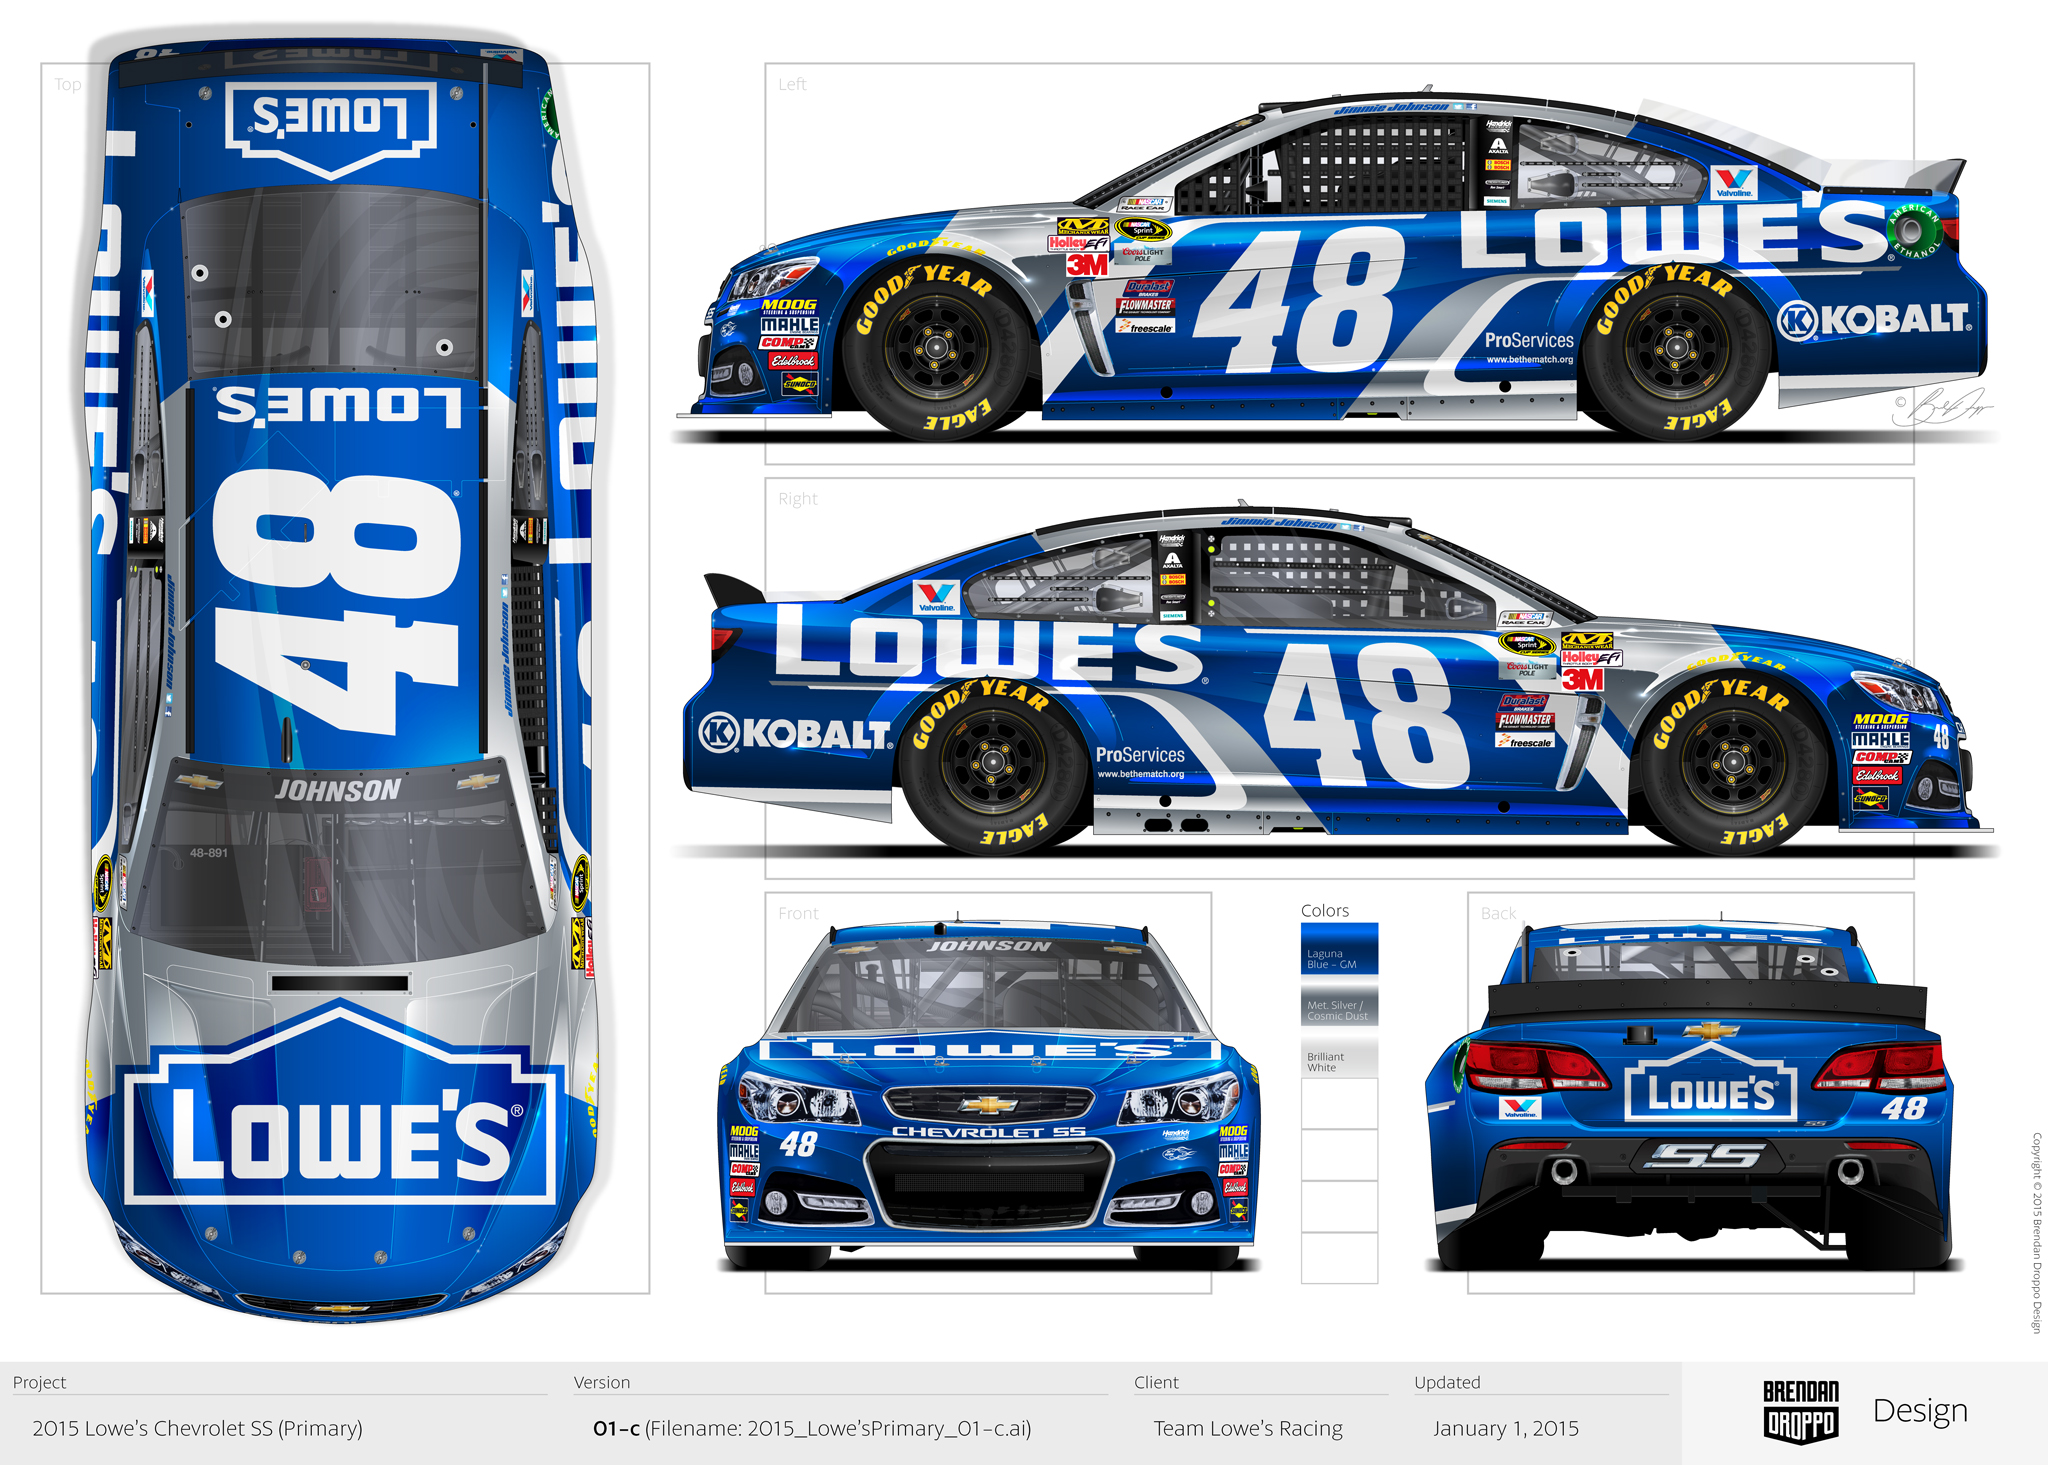 Lowe Sprimary C on Richard Petty 43 Car Images